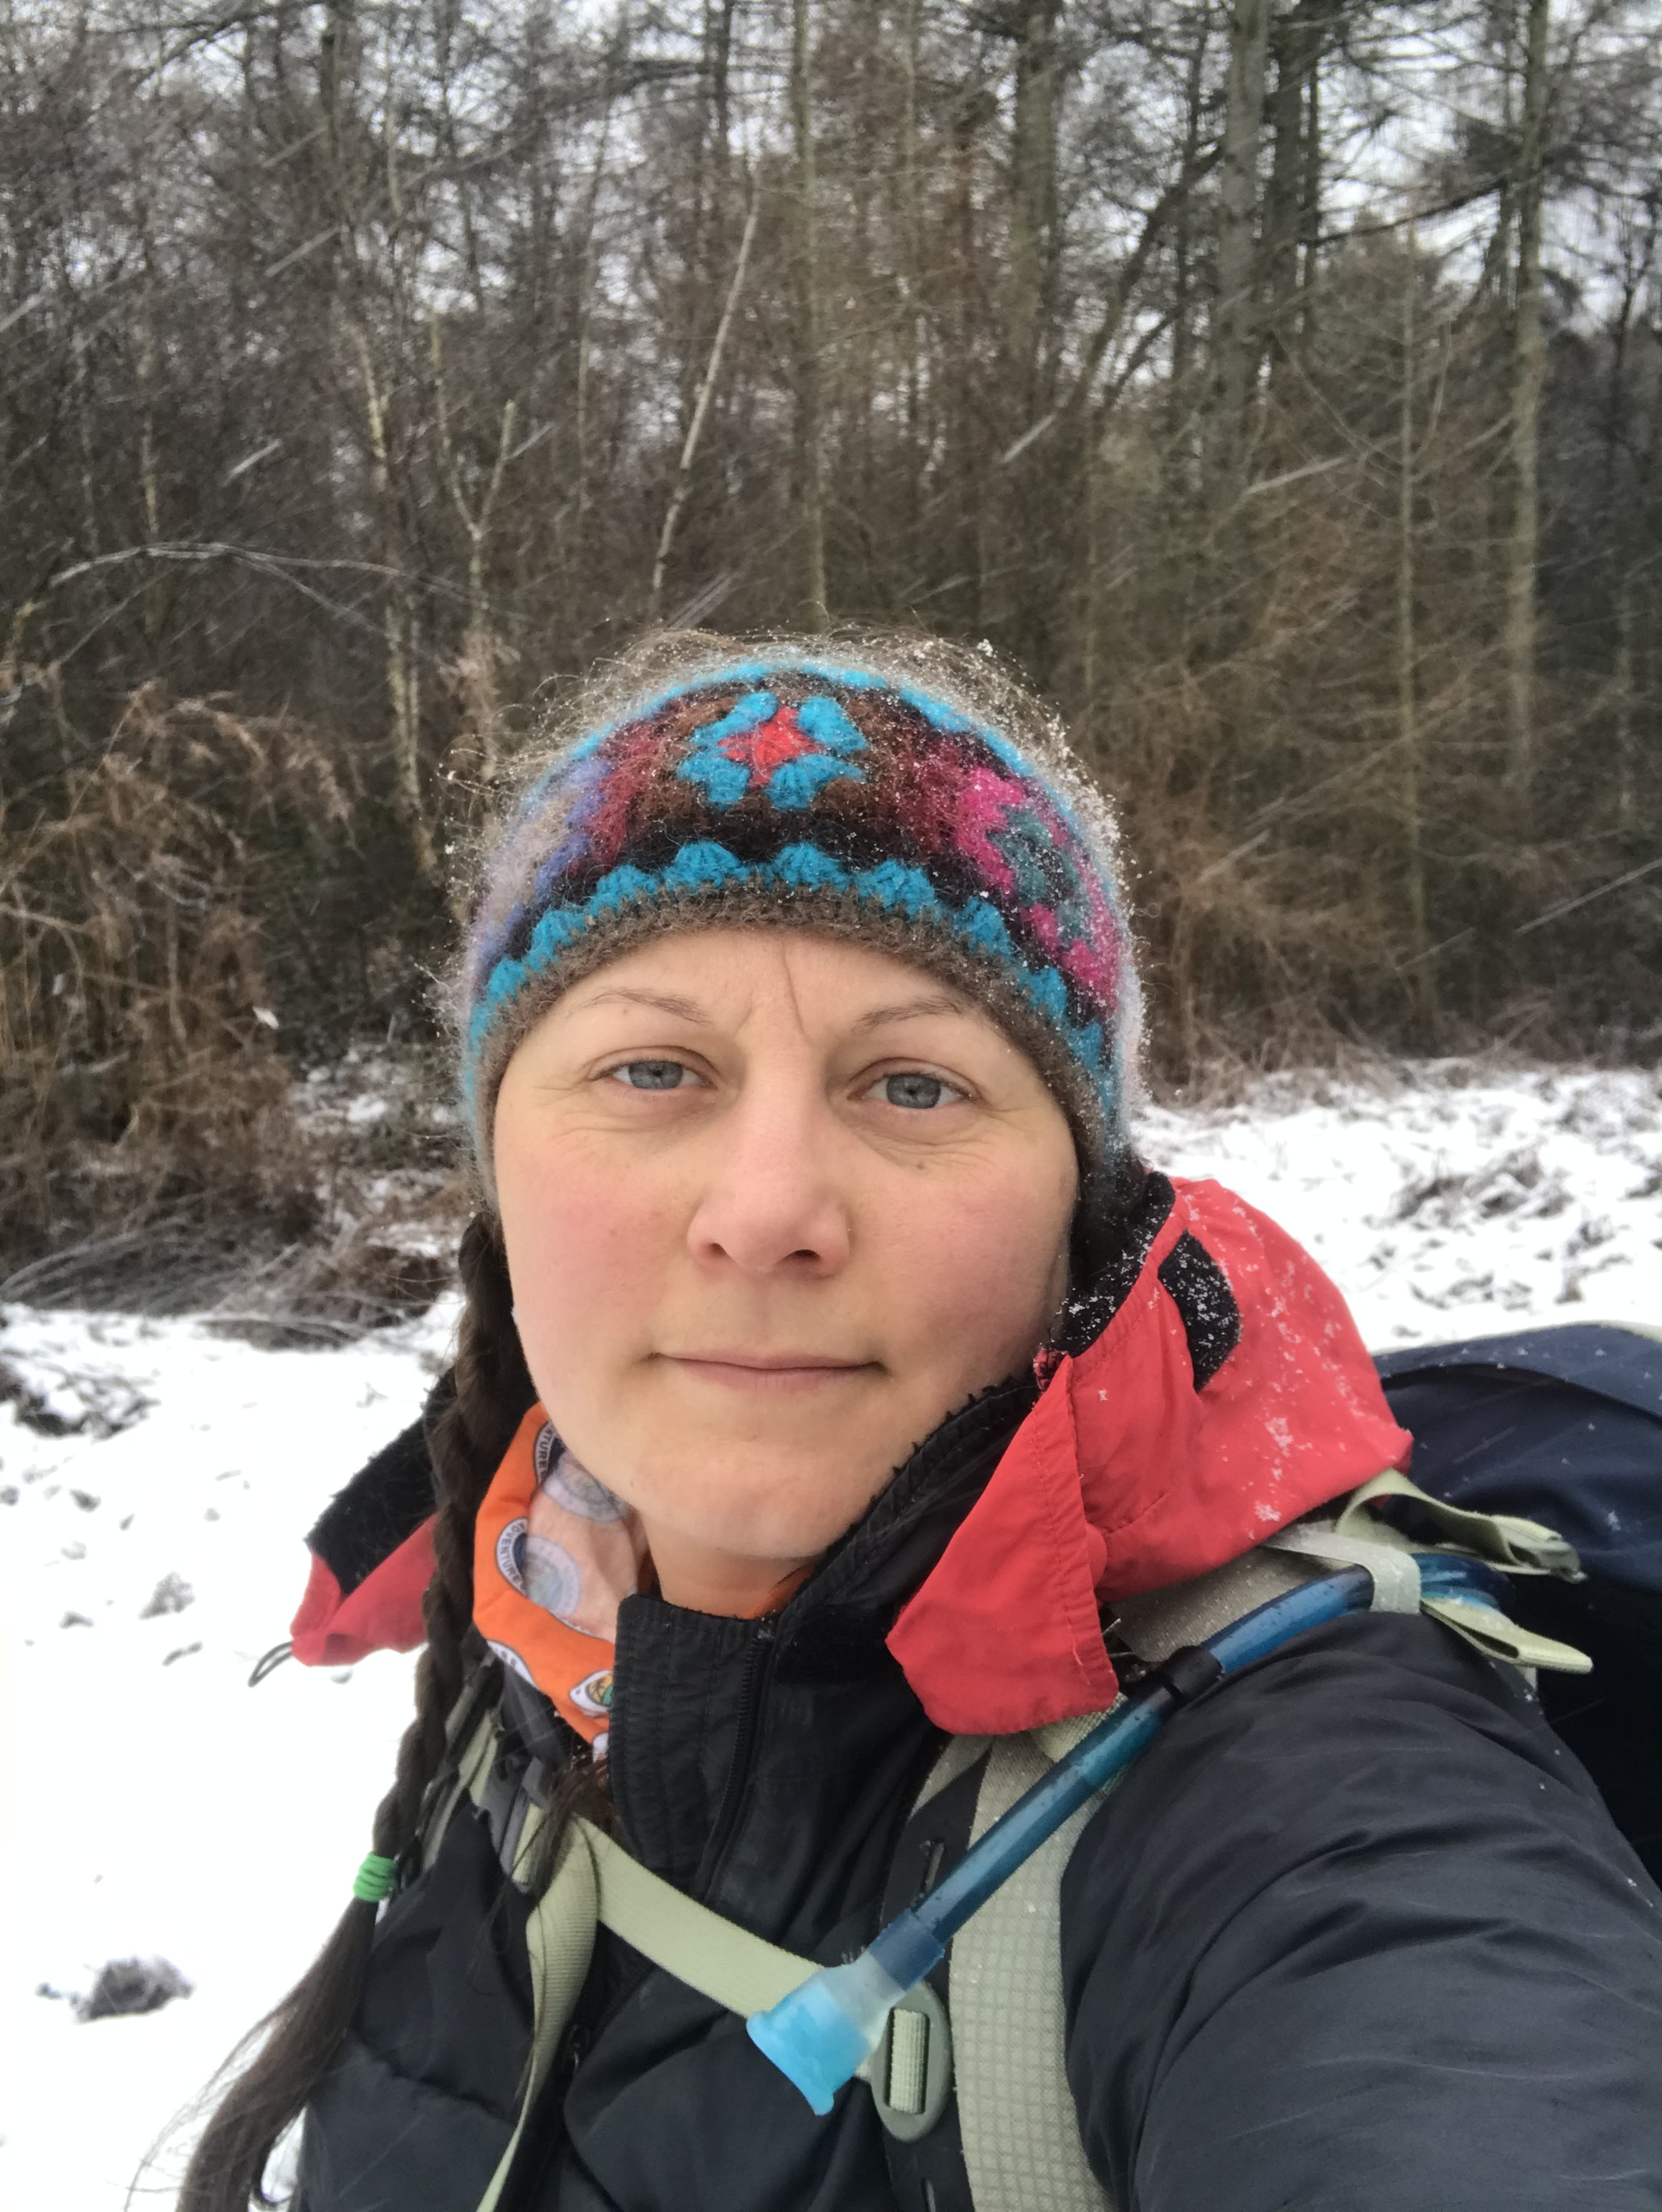 A selfie, wearing winter walking gear. The ground is covered in snow with wood in the background.